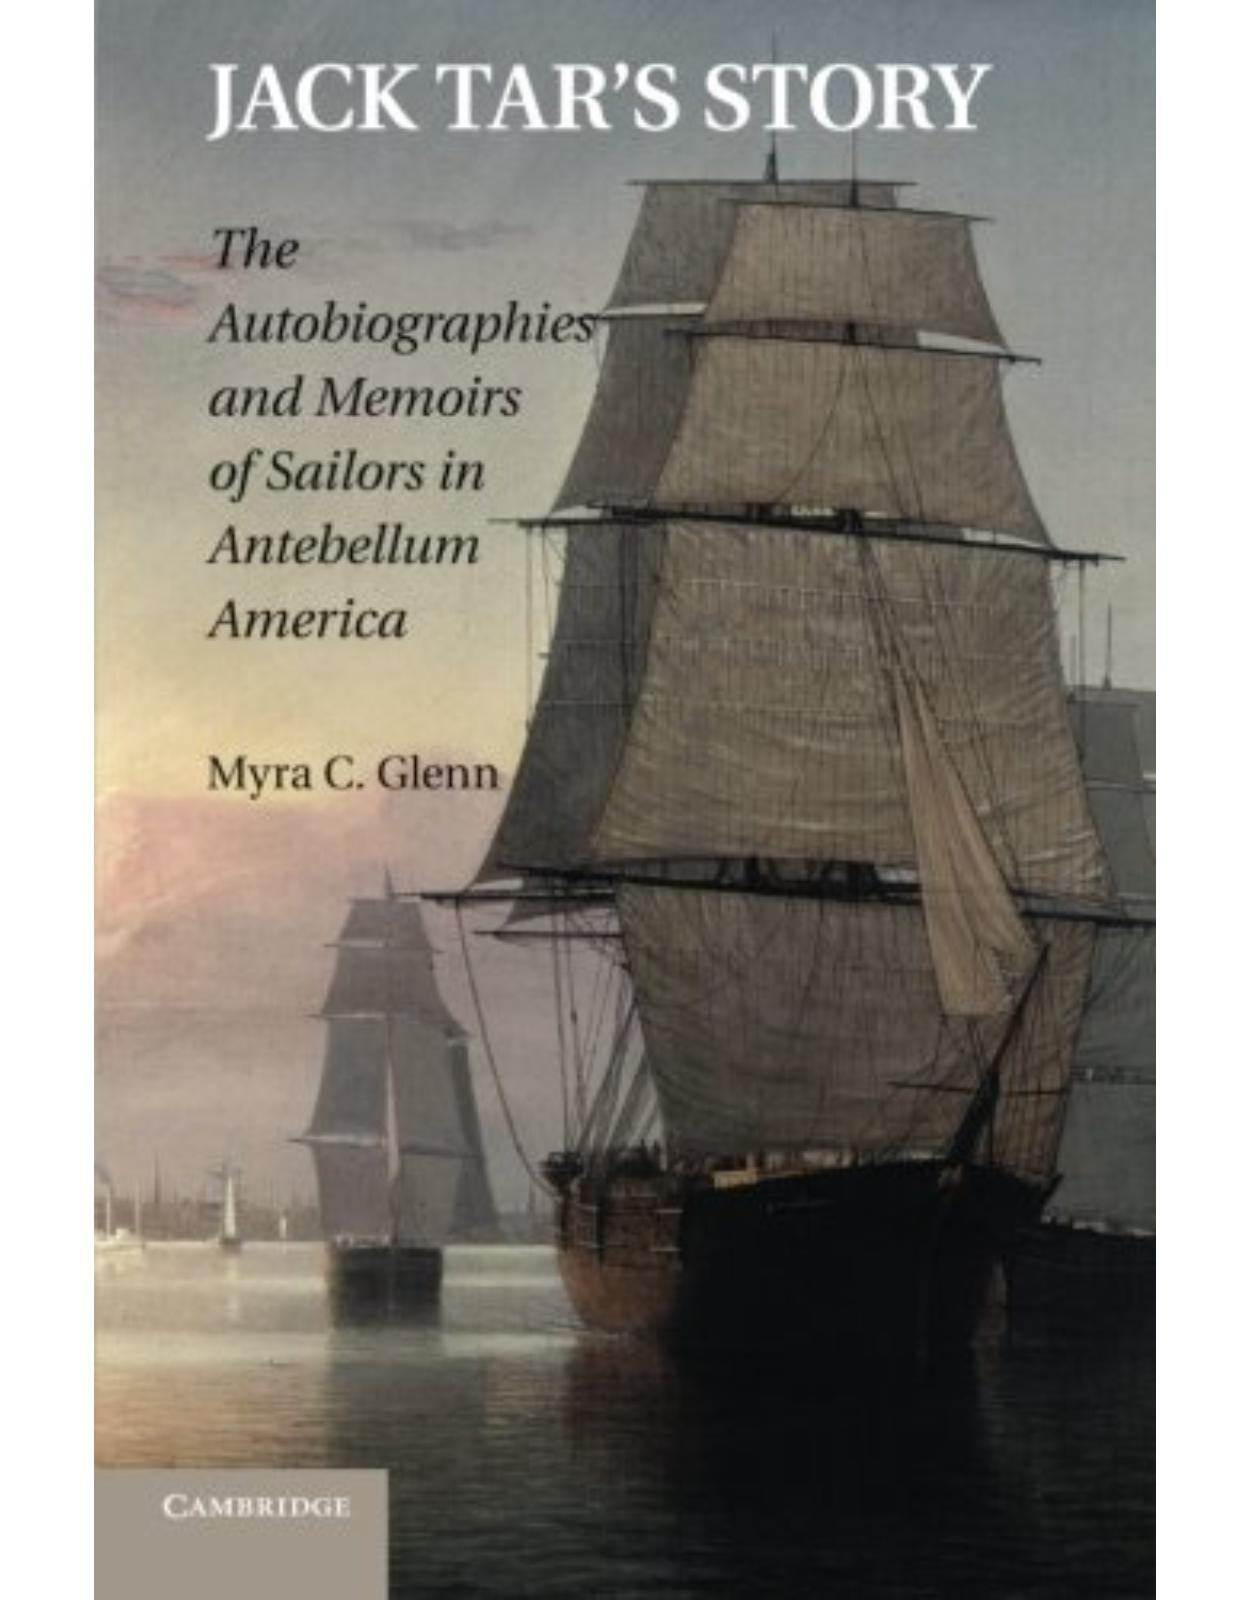 Jack Tar's Story: The Autobiographies and Memoirs of Sailors in Antebellum America